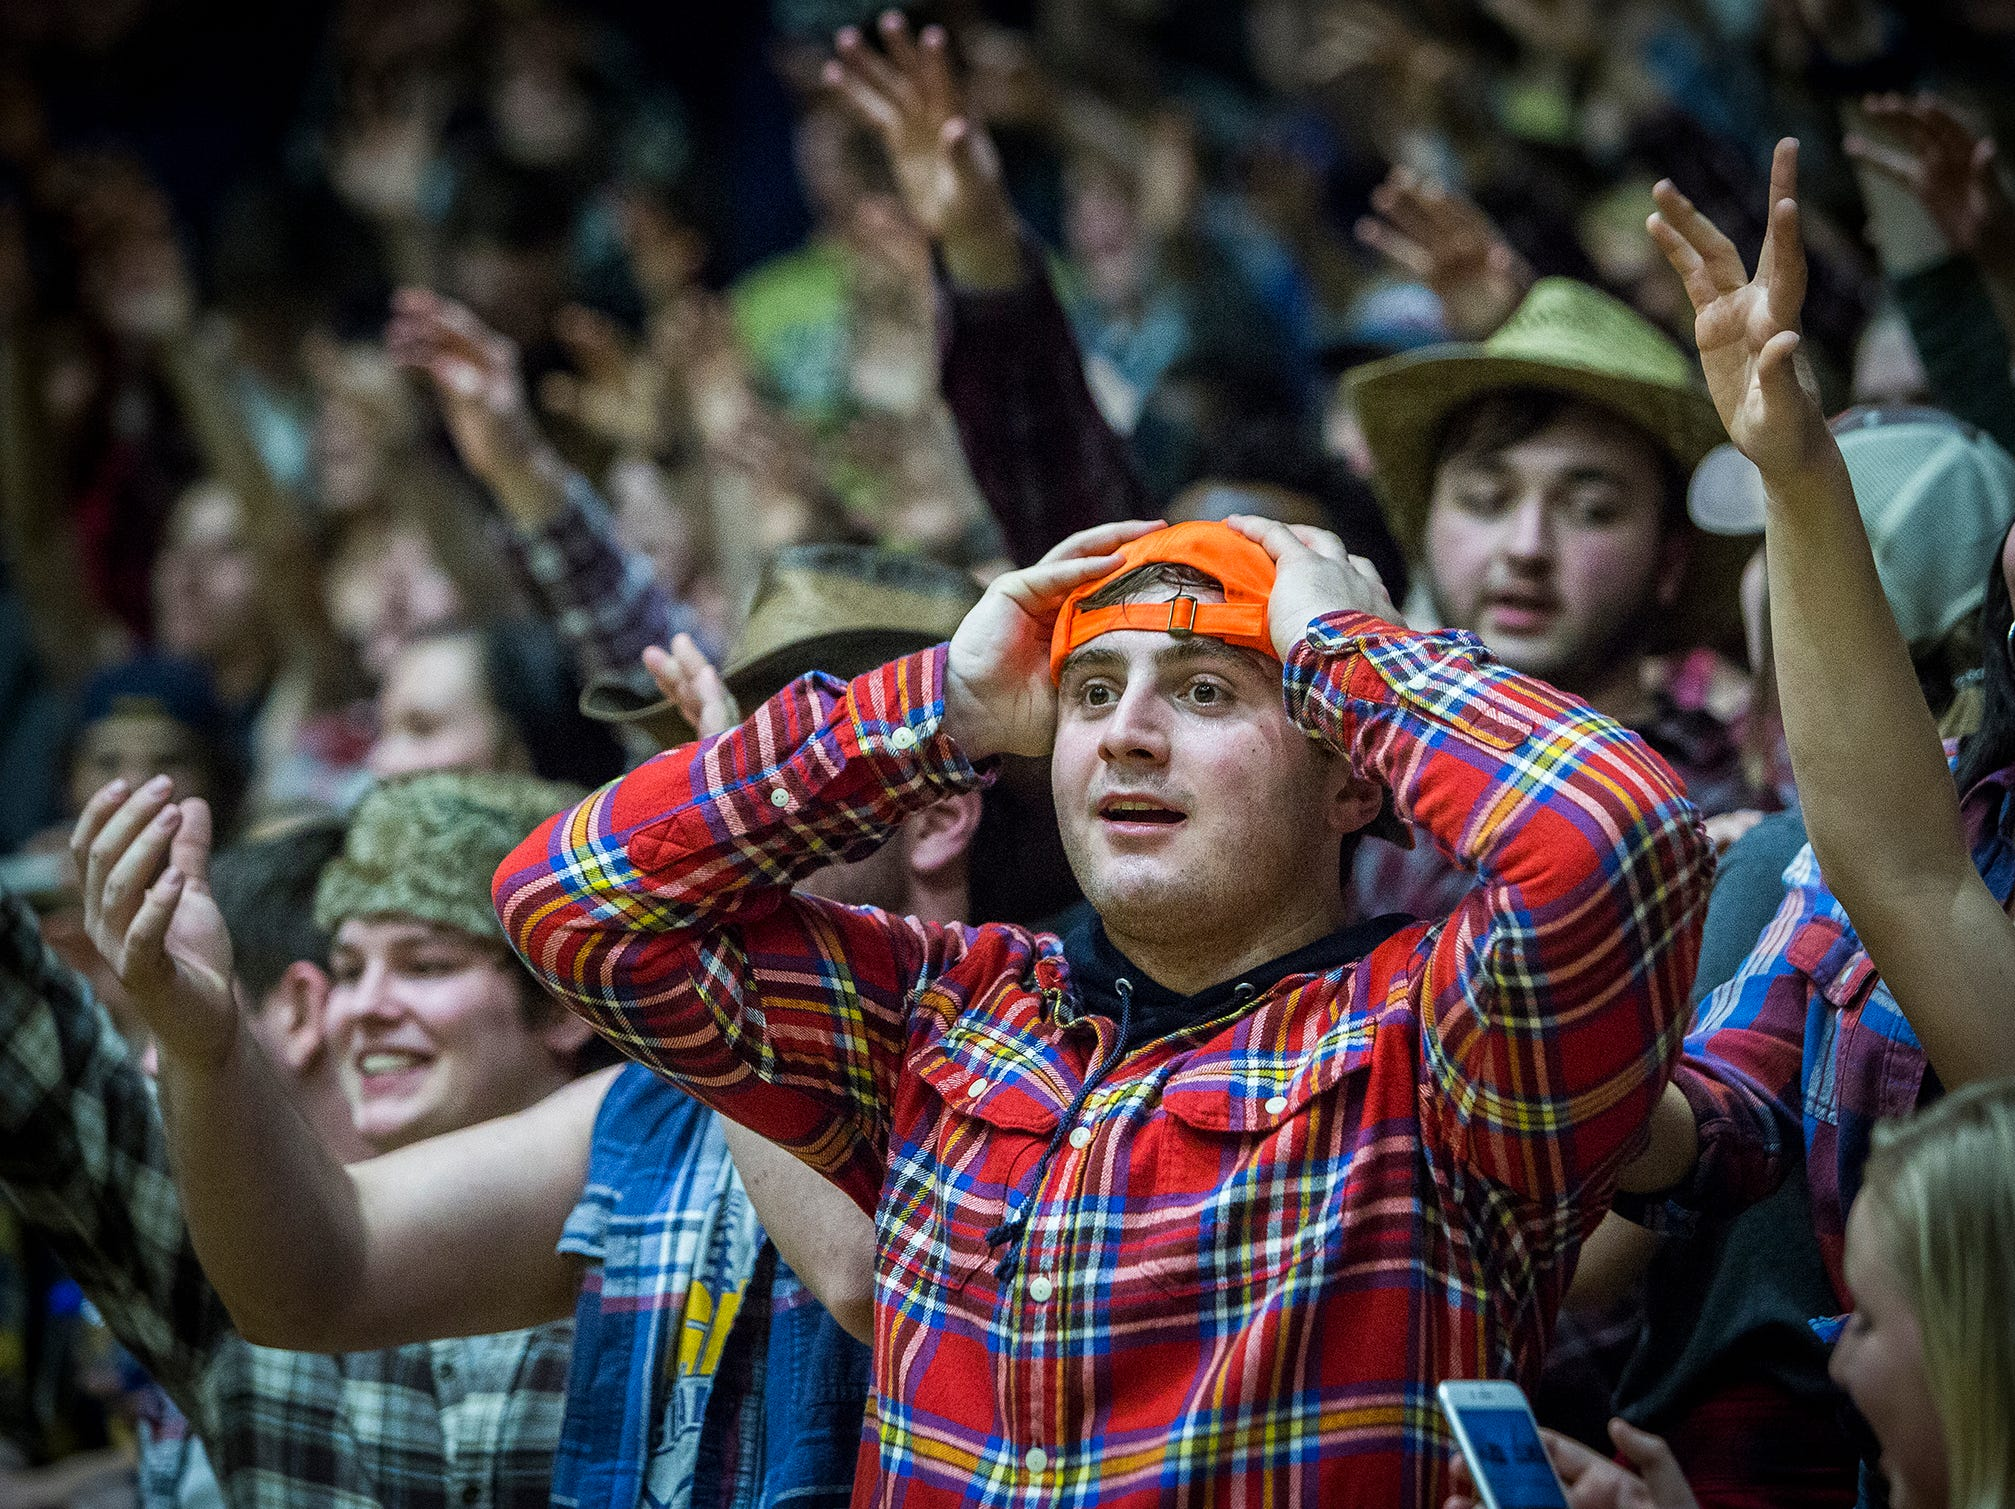 Delta fans react to their team defeating New Castle in the sectional championship game at New Castle High School Saturday, March 2, 2019.